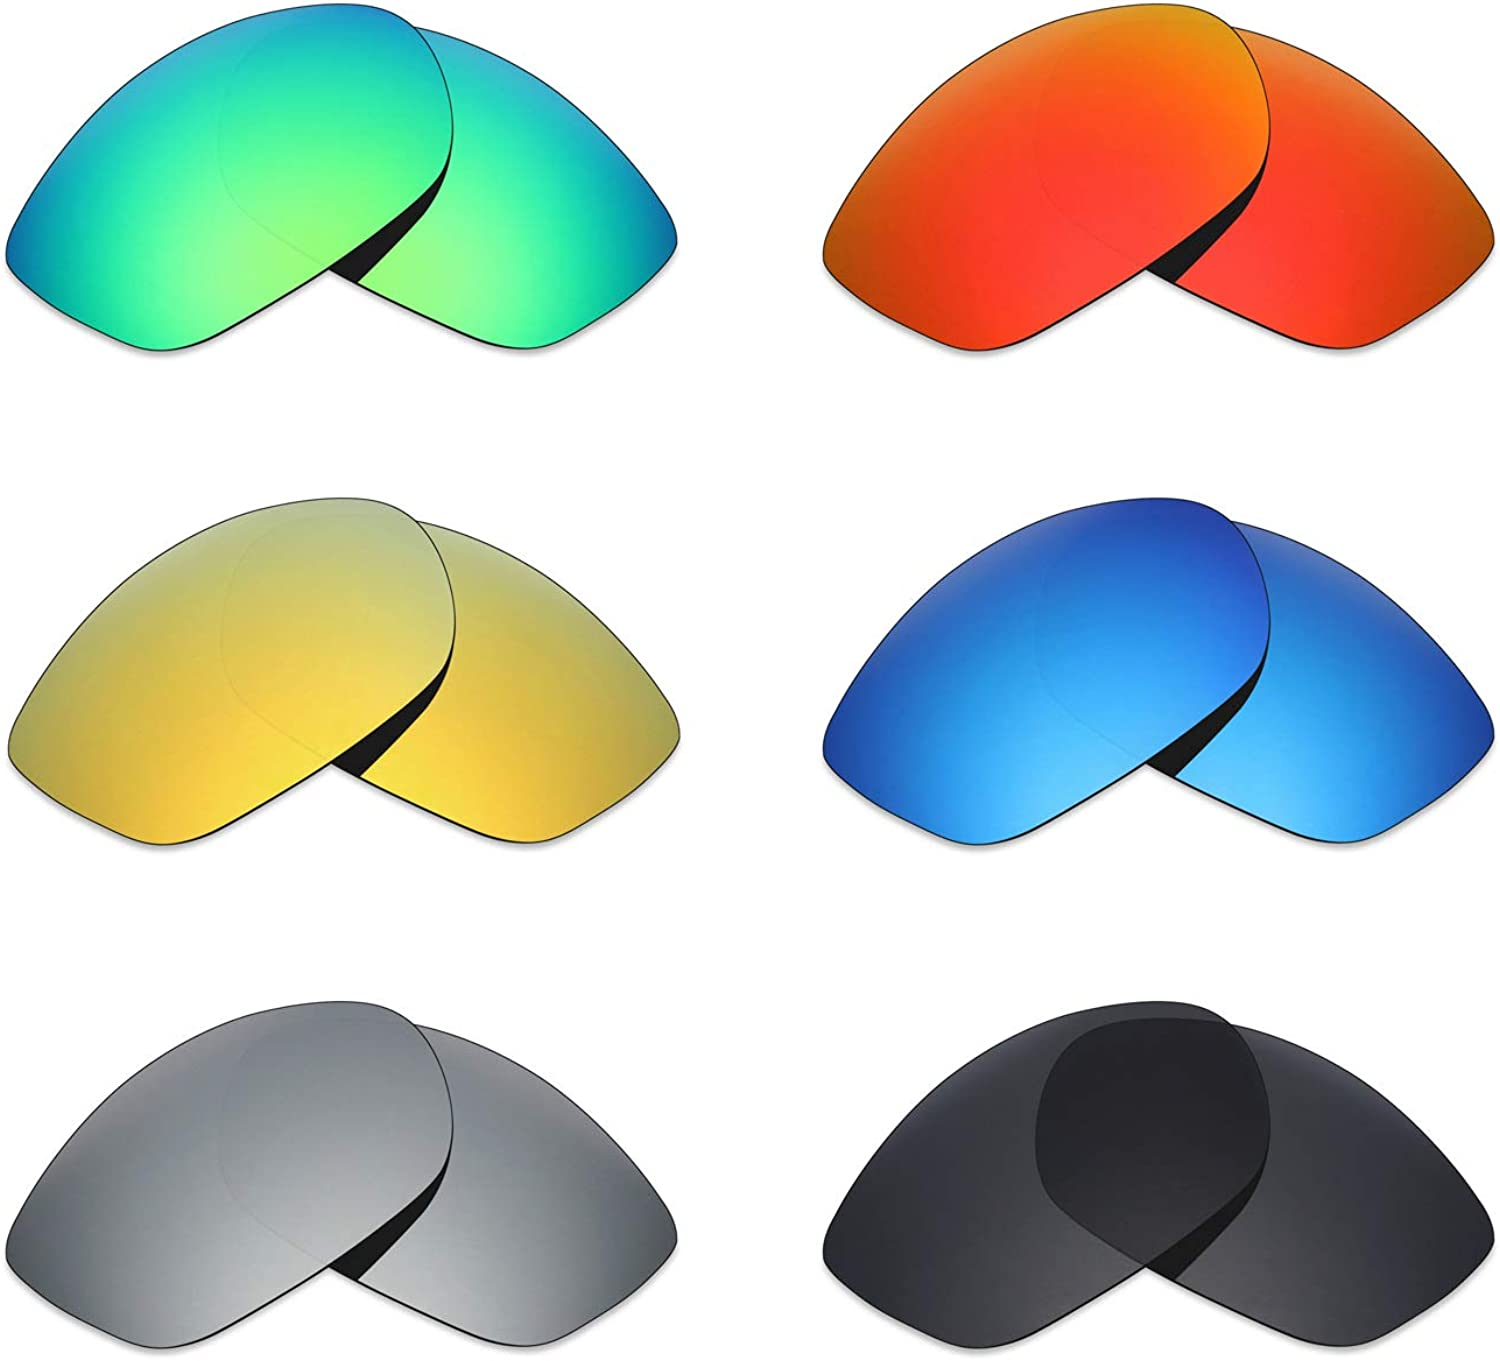 Mryok 6 Pair Polarized Replacement Lenses Del Max 79% OFF for Max 59% OFF Mar Fisc Costa